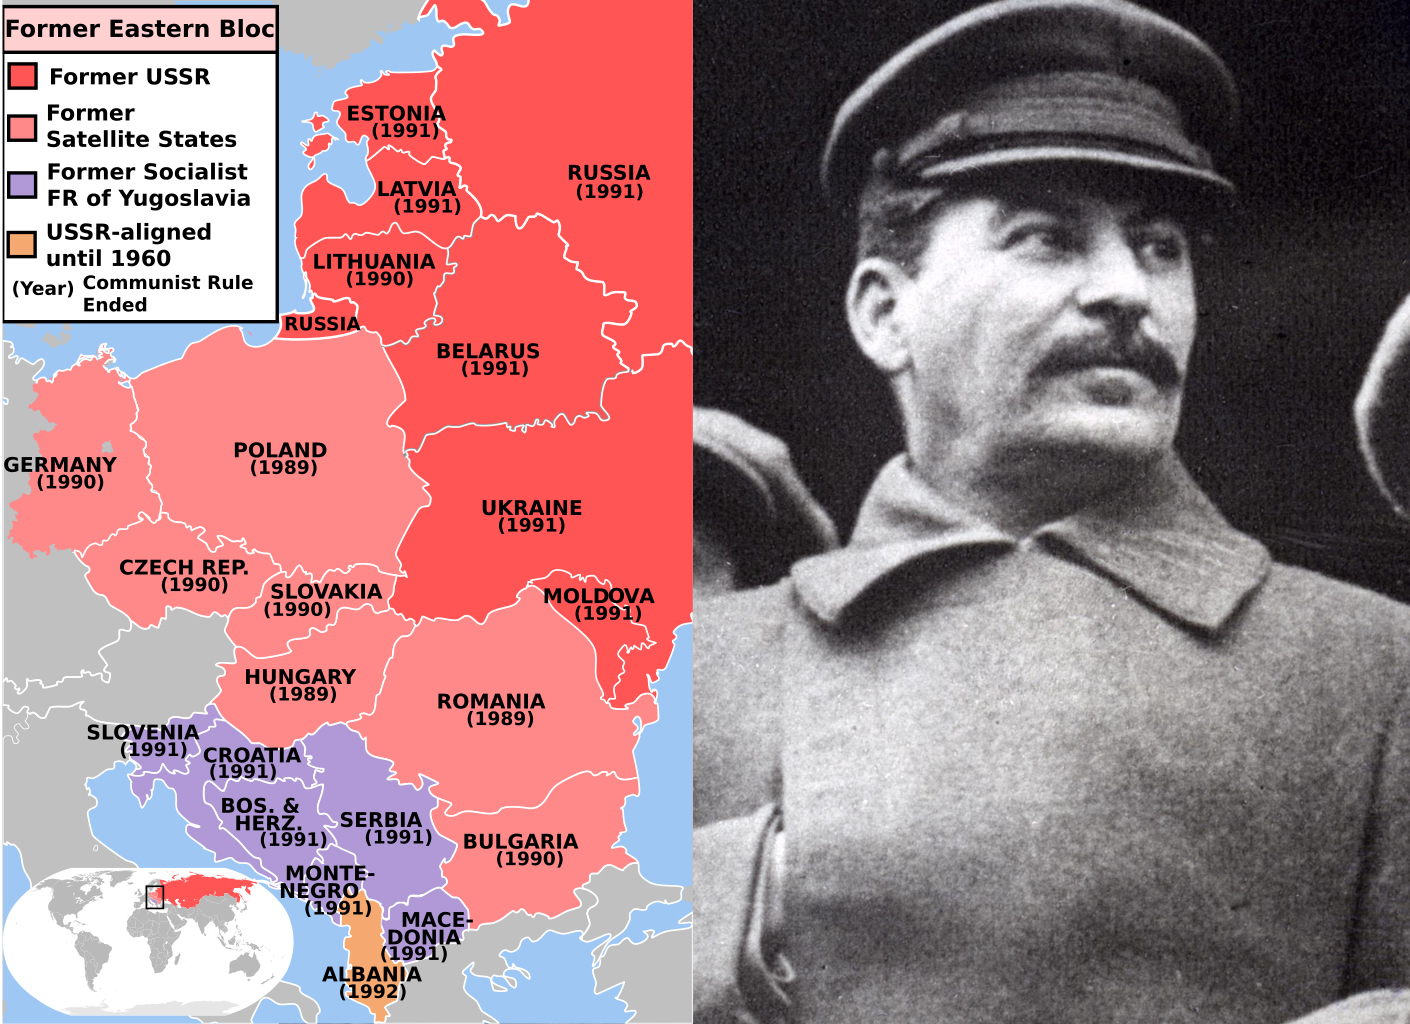 Former Eastern Bloc countries and Joesph Stalin